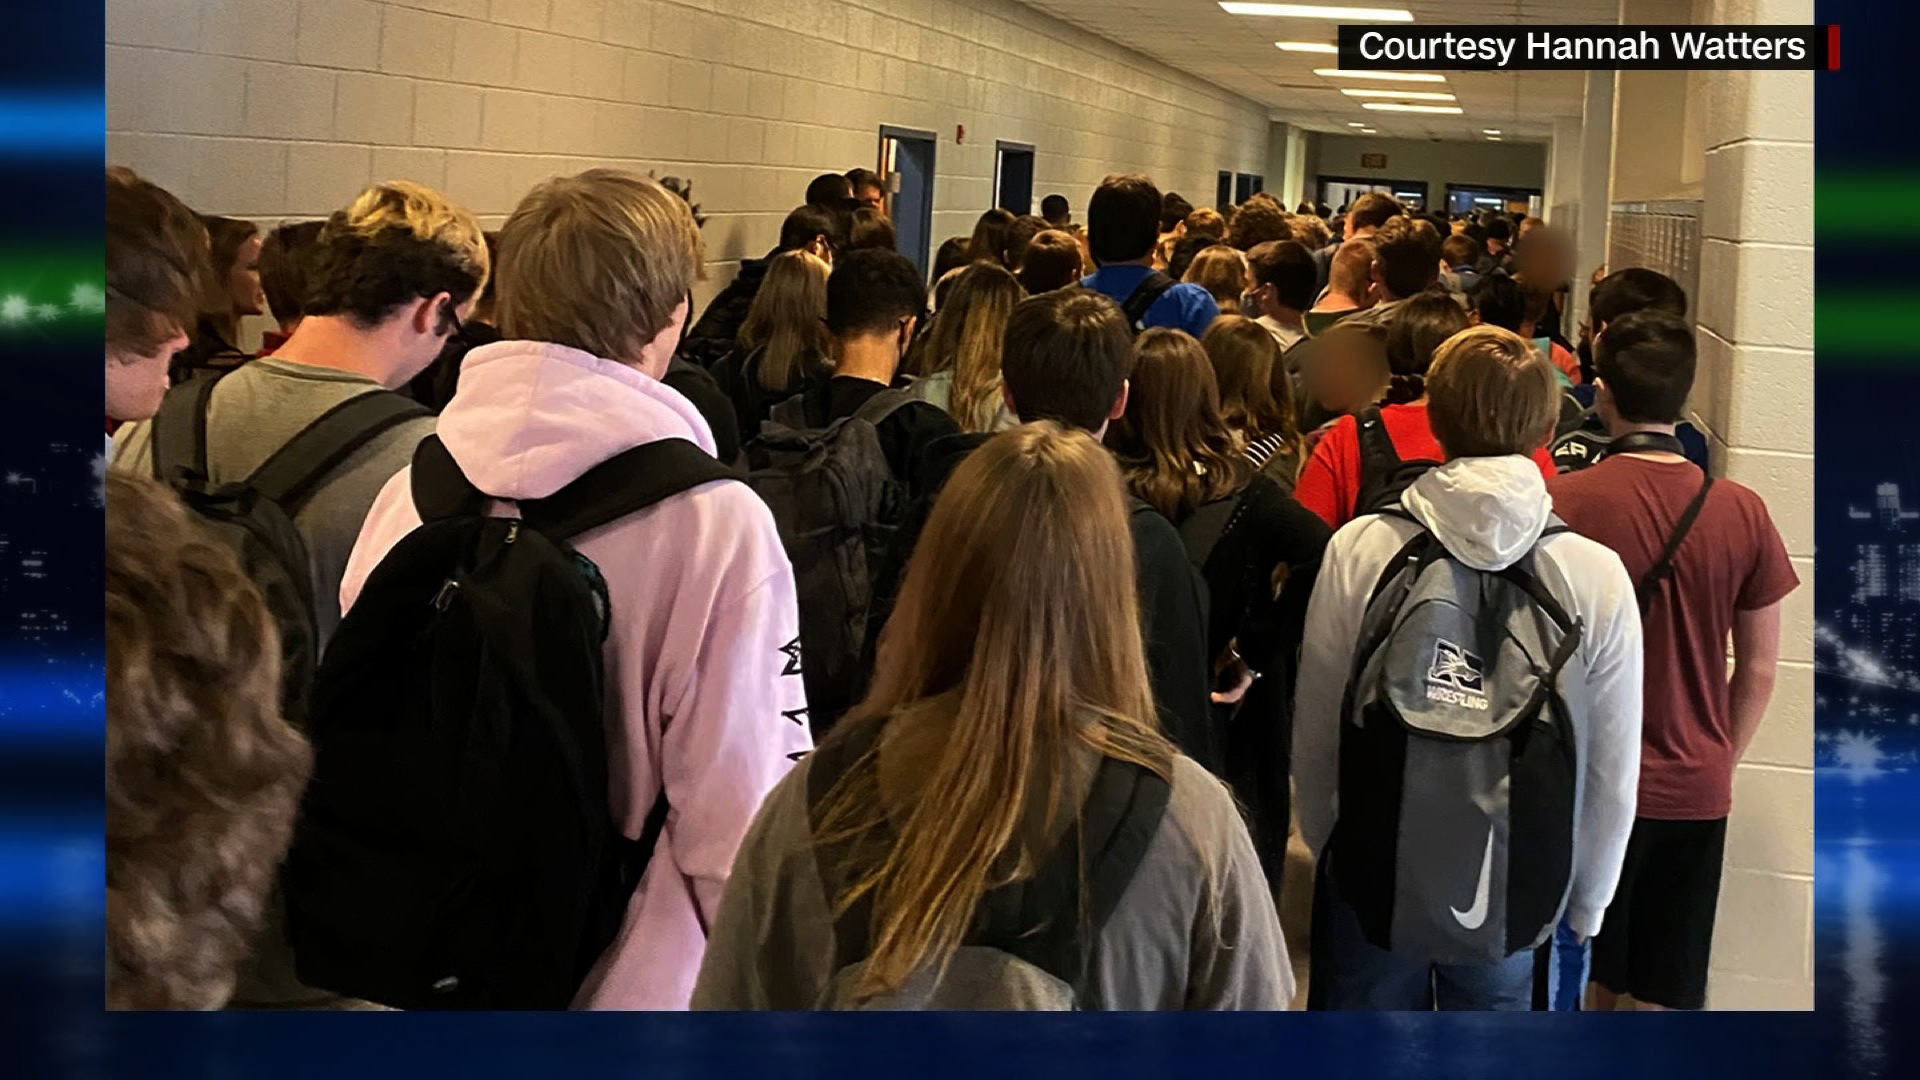 9 cases of Covid-19 reported at a Georgia school seen in photo of a crowded hallway, report says